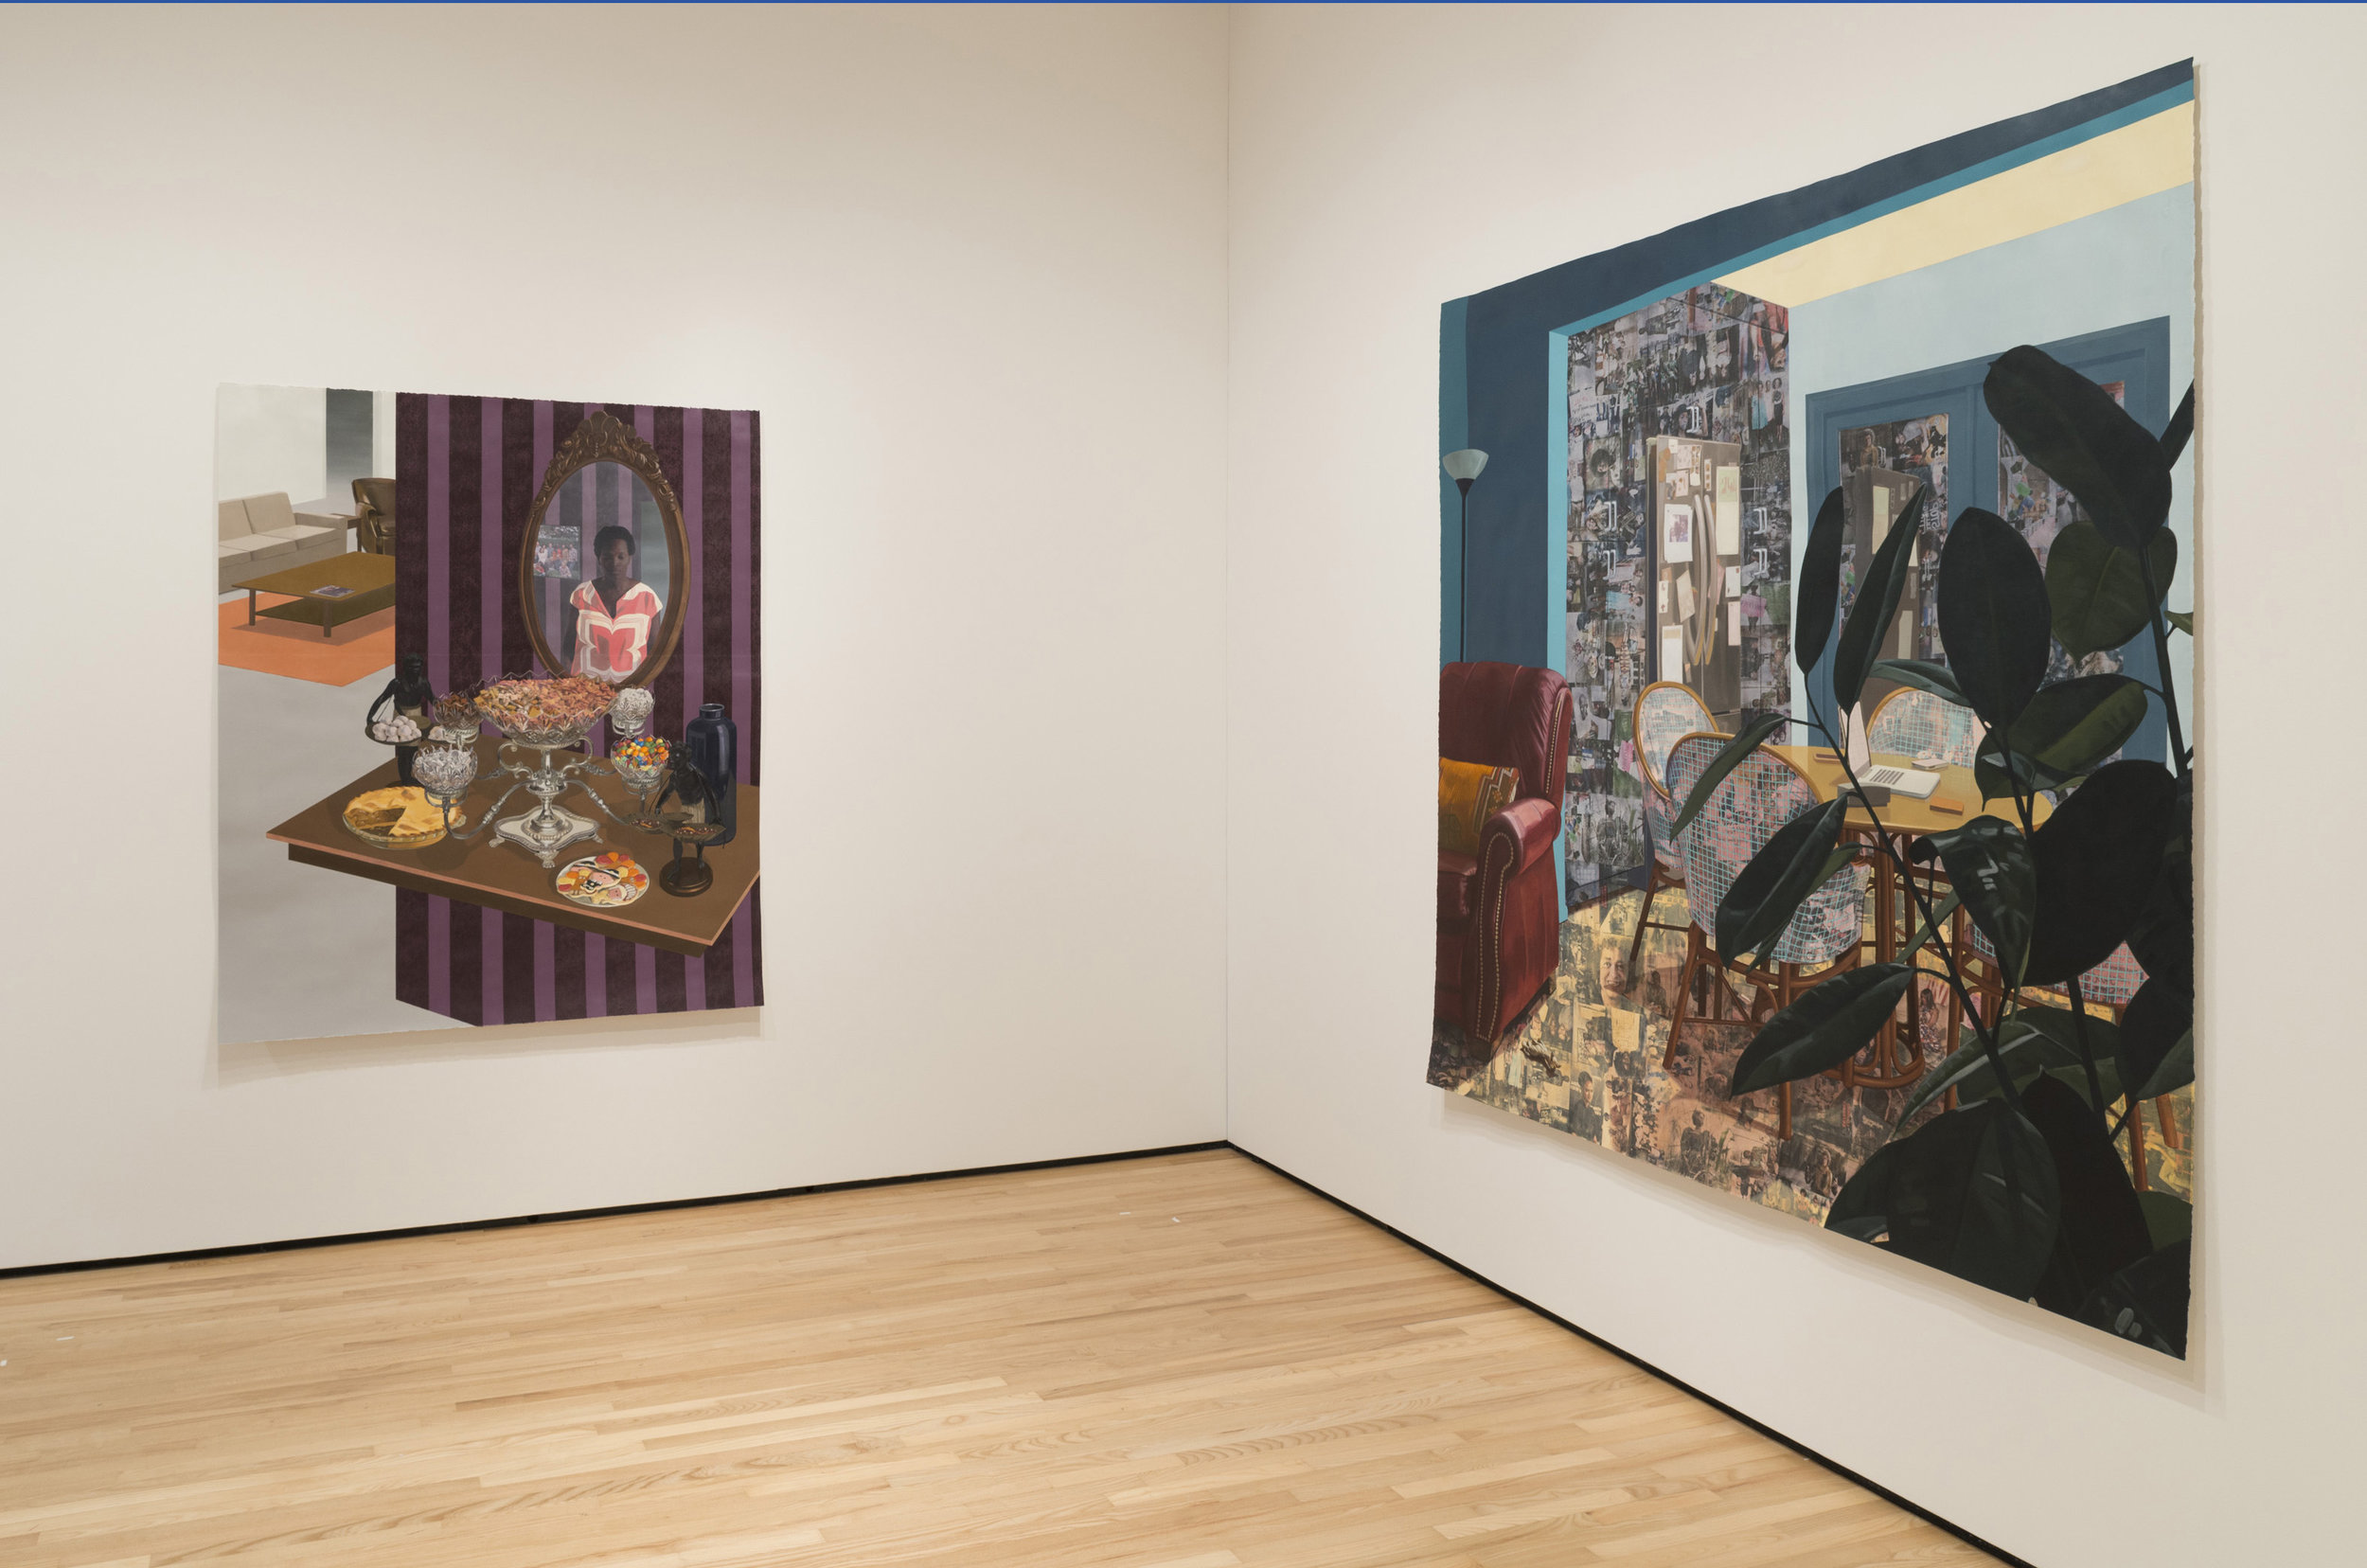 Installation view 3, Front Room: Njideka Akunyili Crosby | Counterparts. Photo by Mitro Hood.